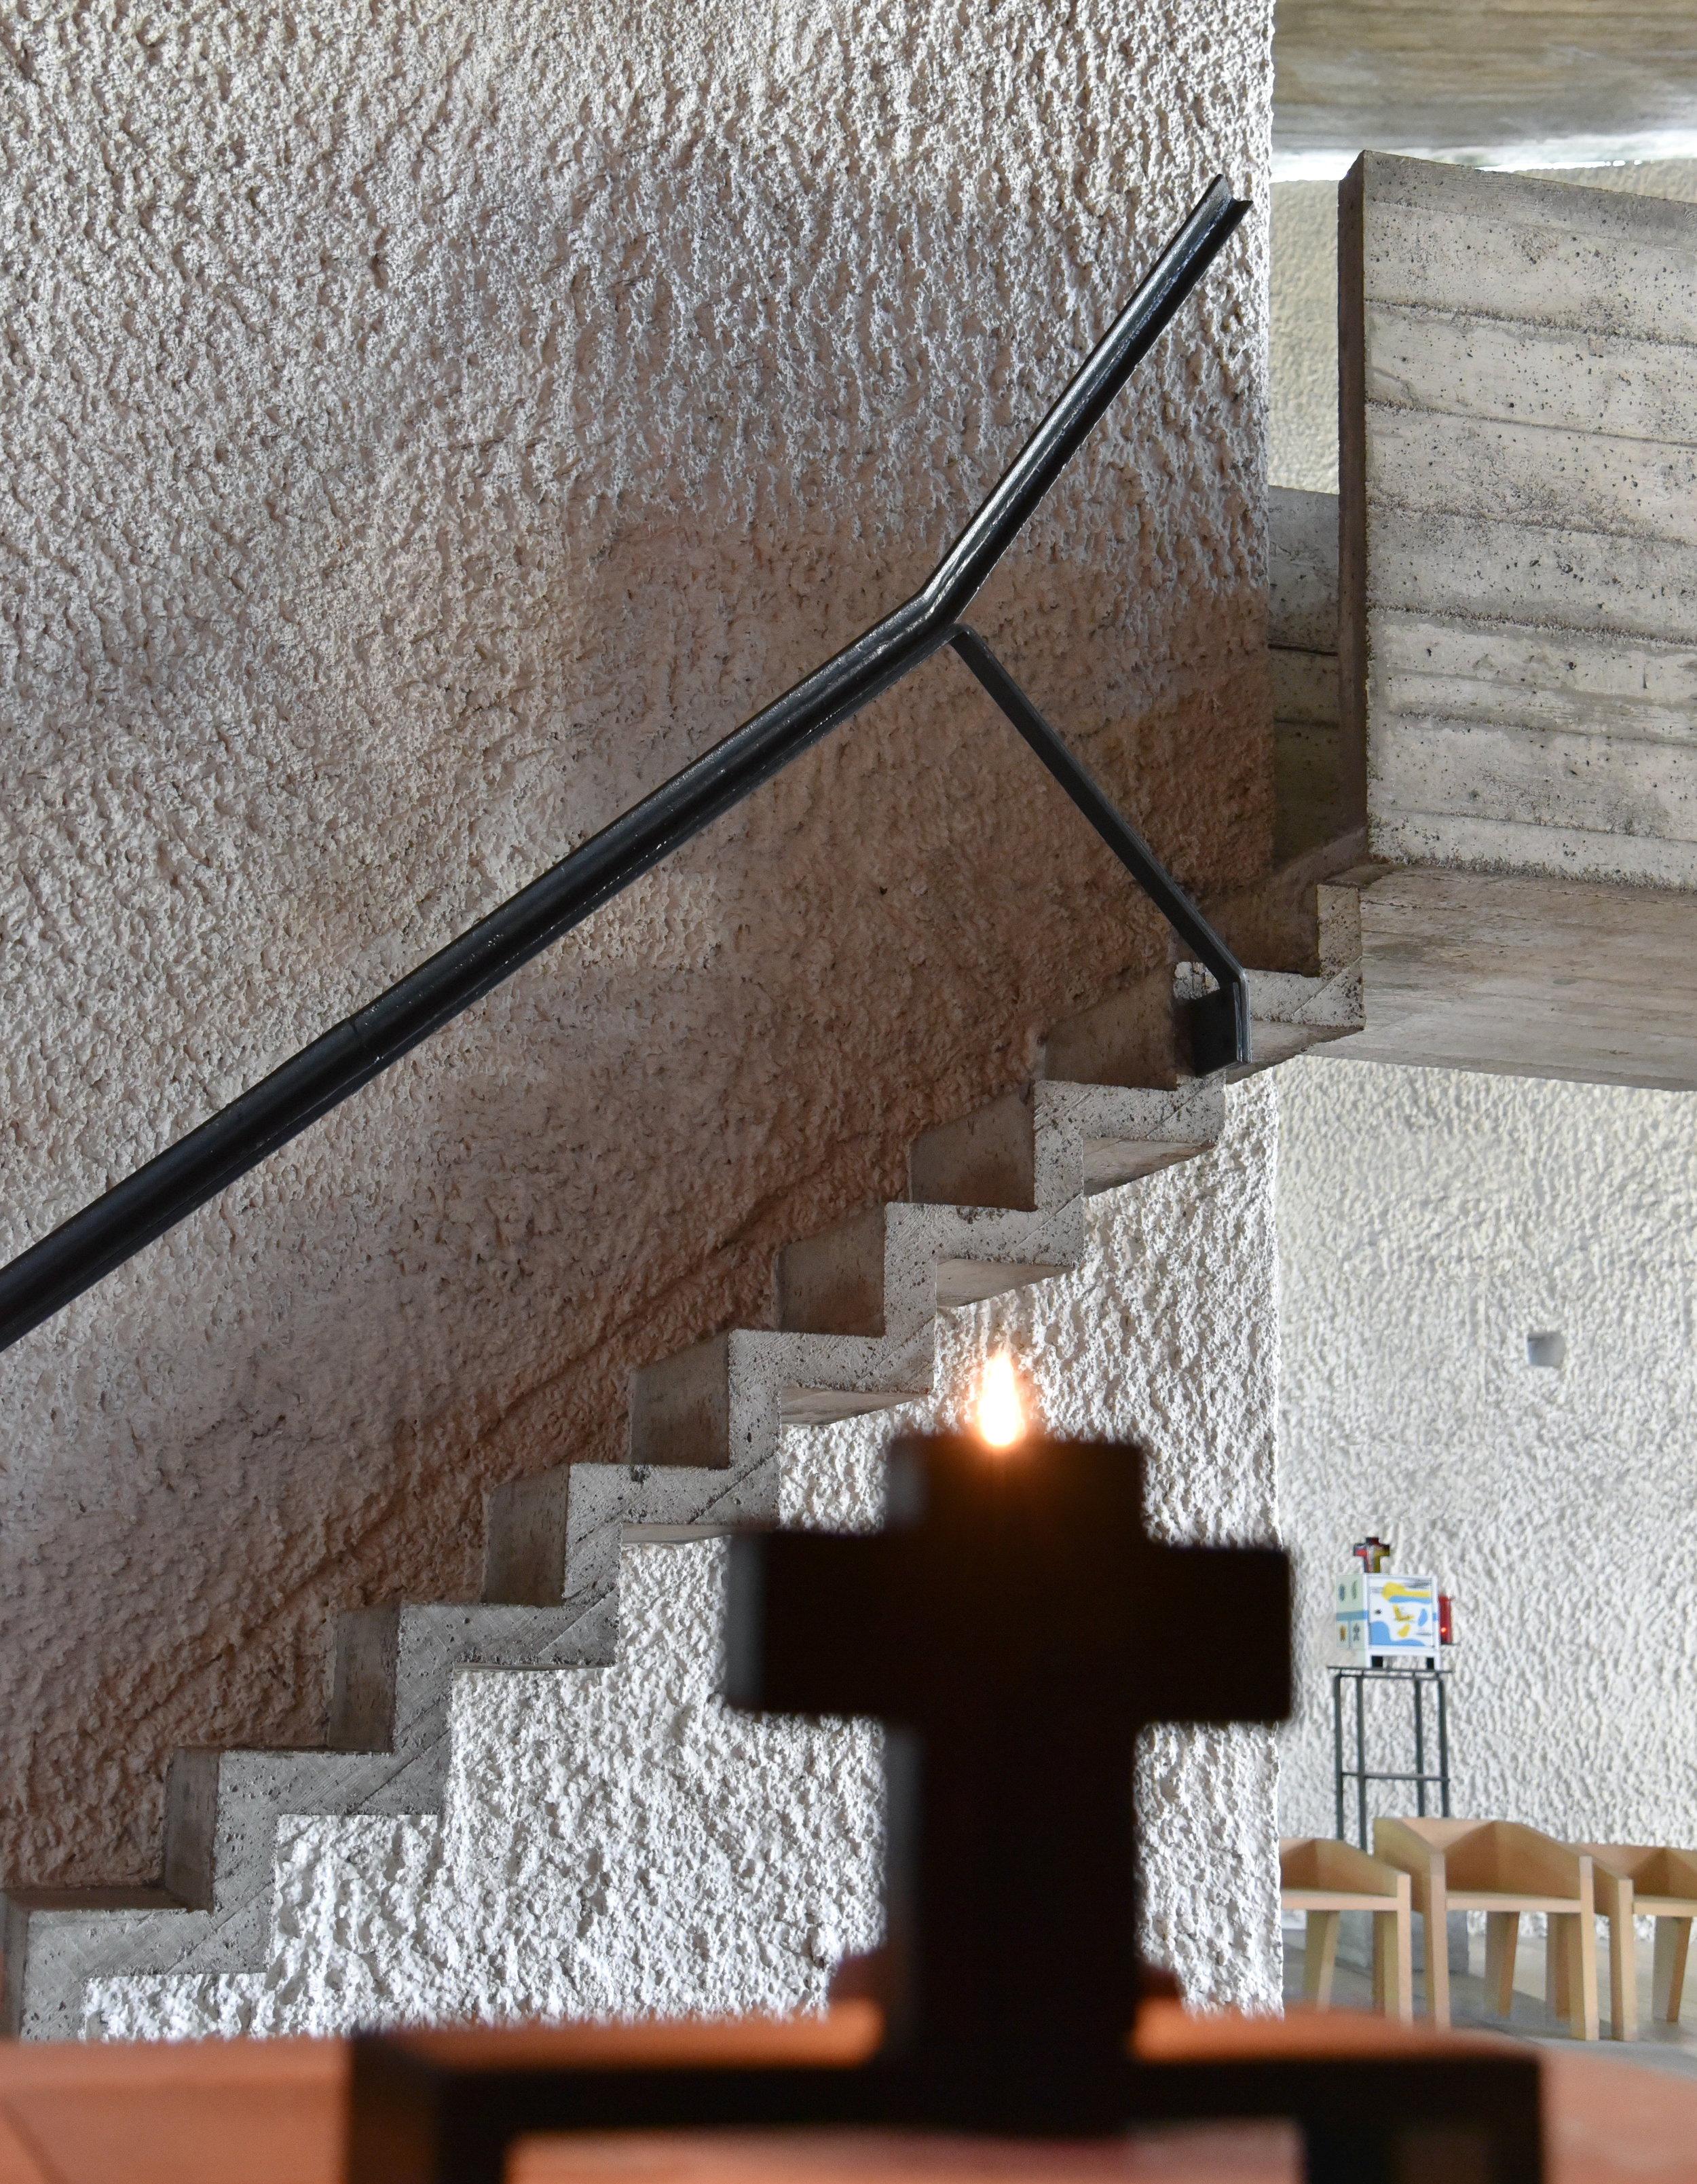 STAIRS TO BÉTON BRUT PULPIT